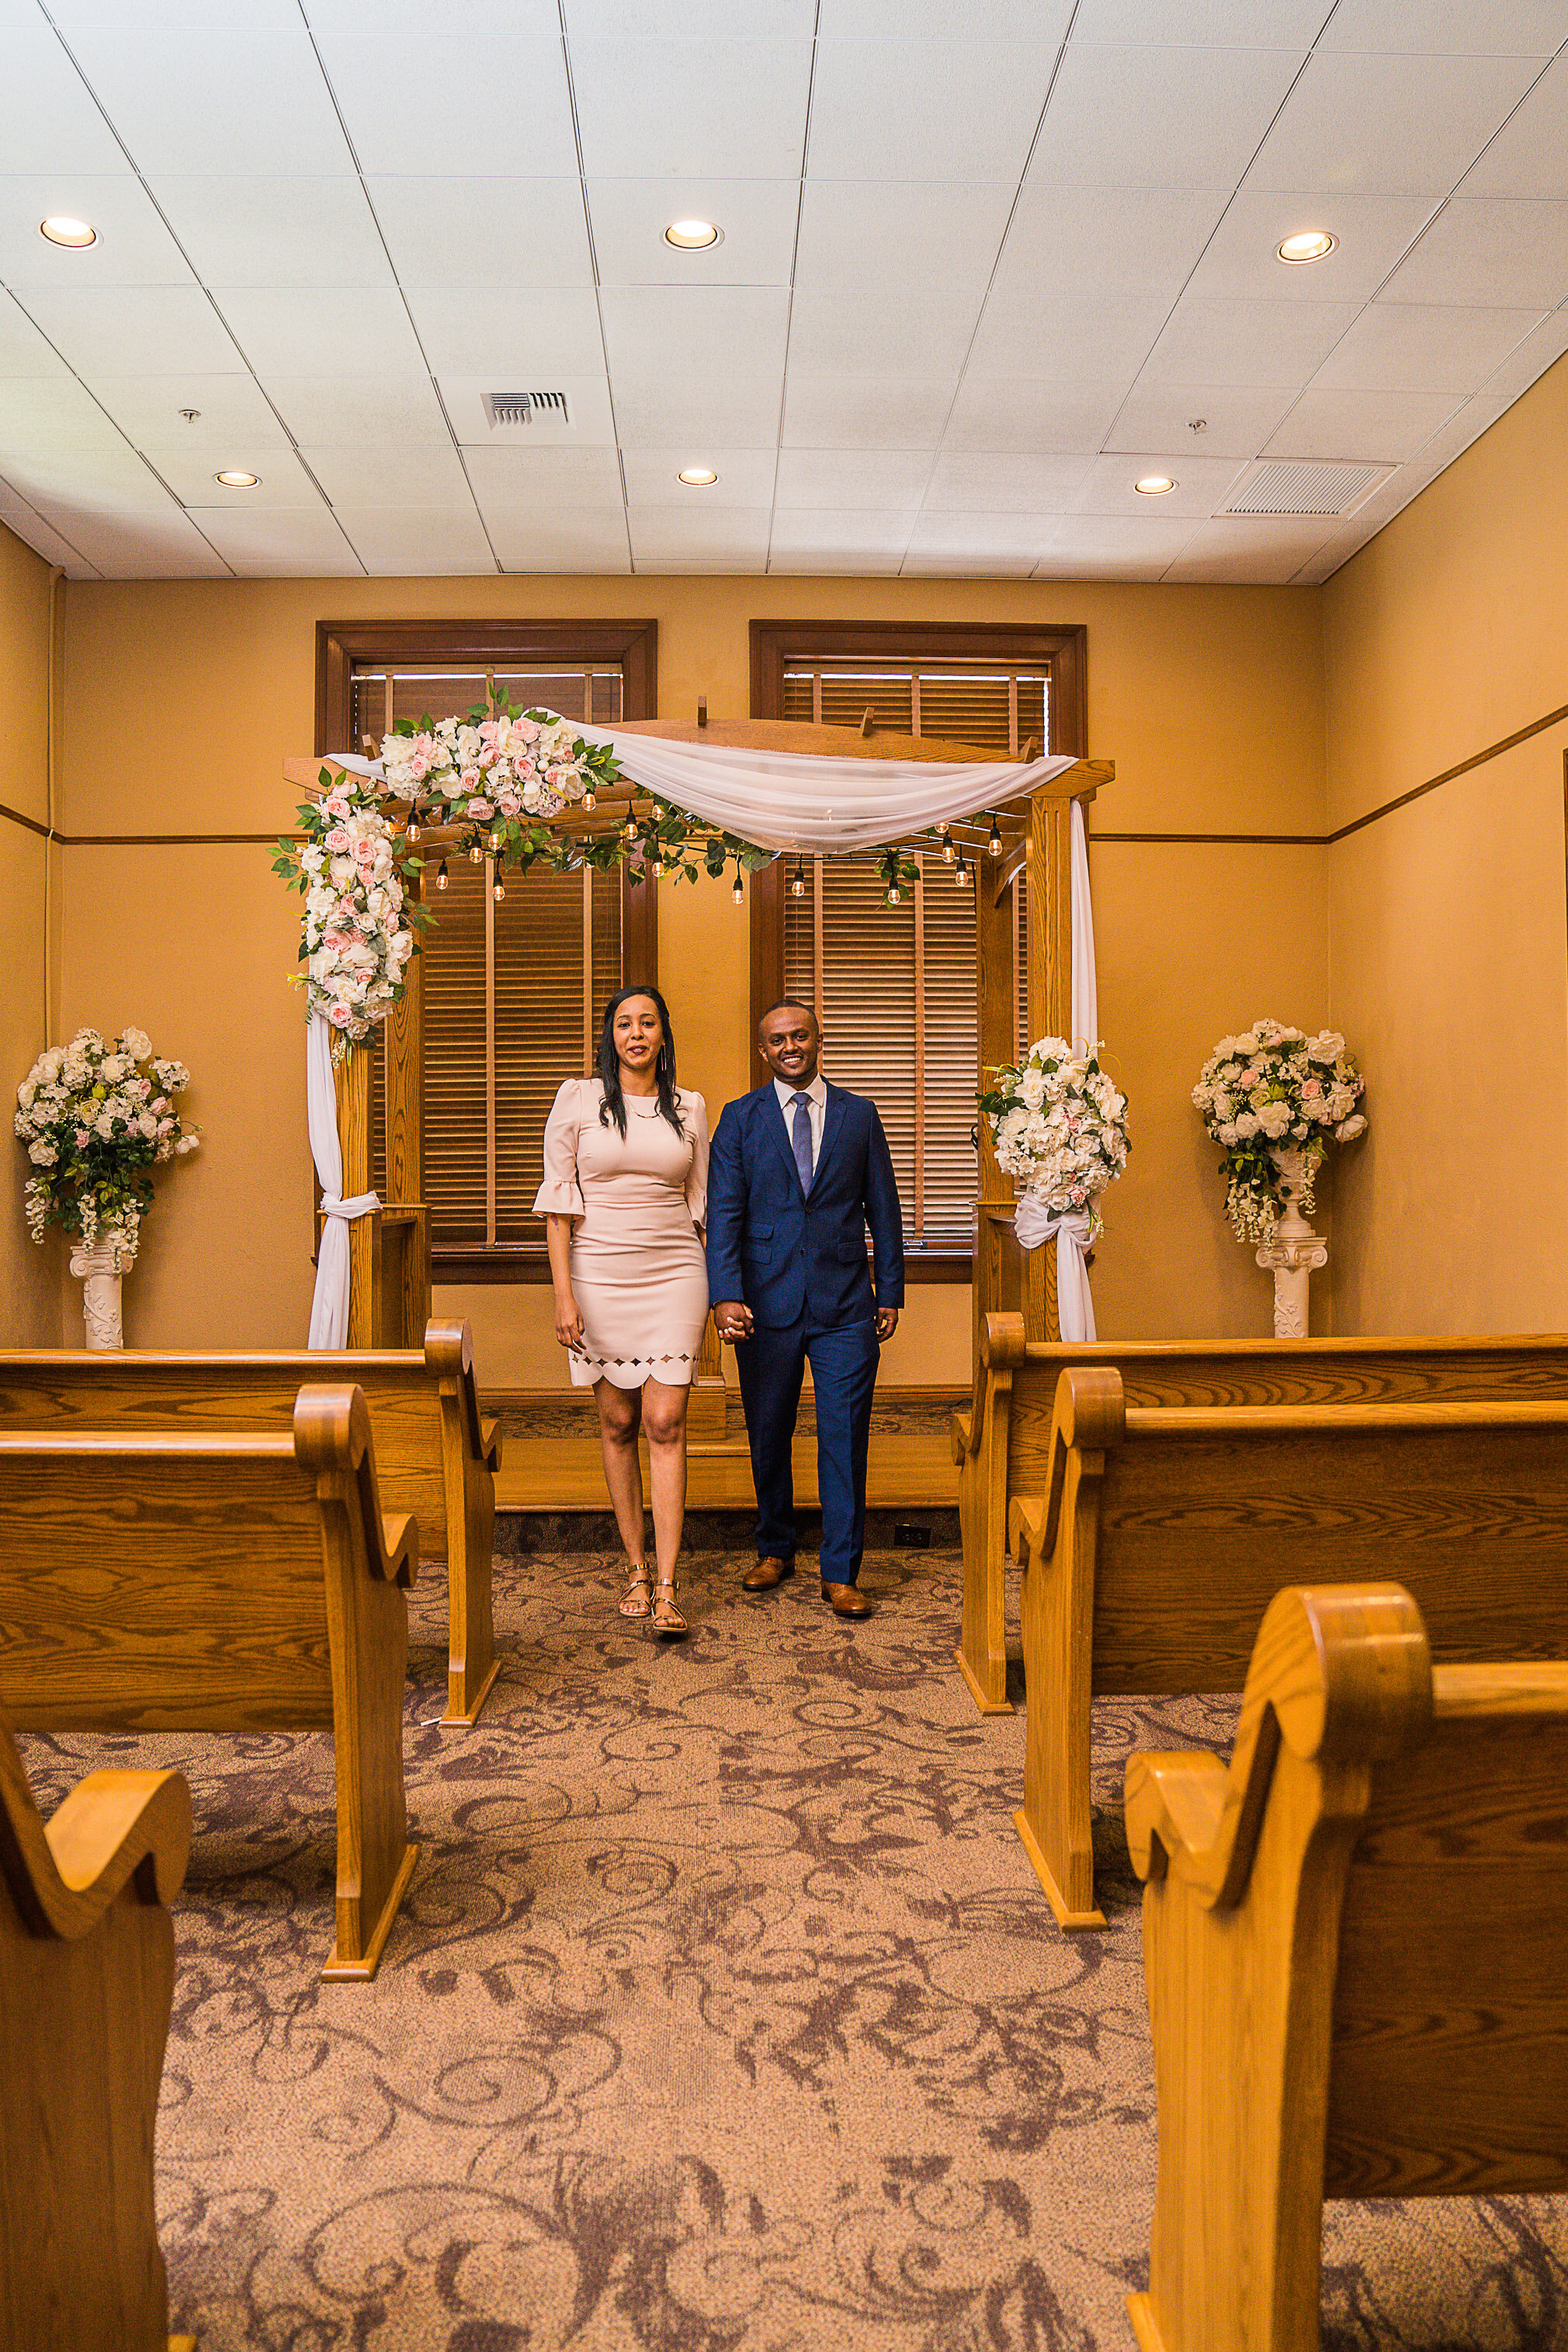 sewit-elopement-orange-county-santa-ana-courthouse-14.jpg